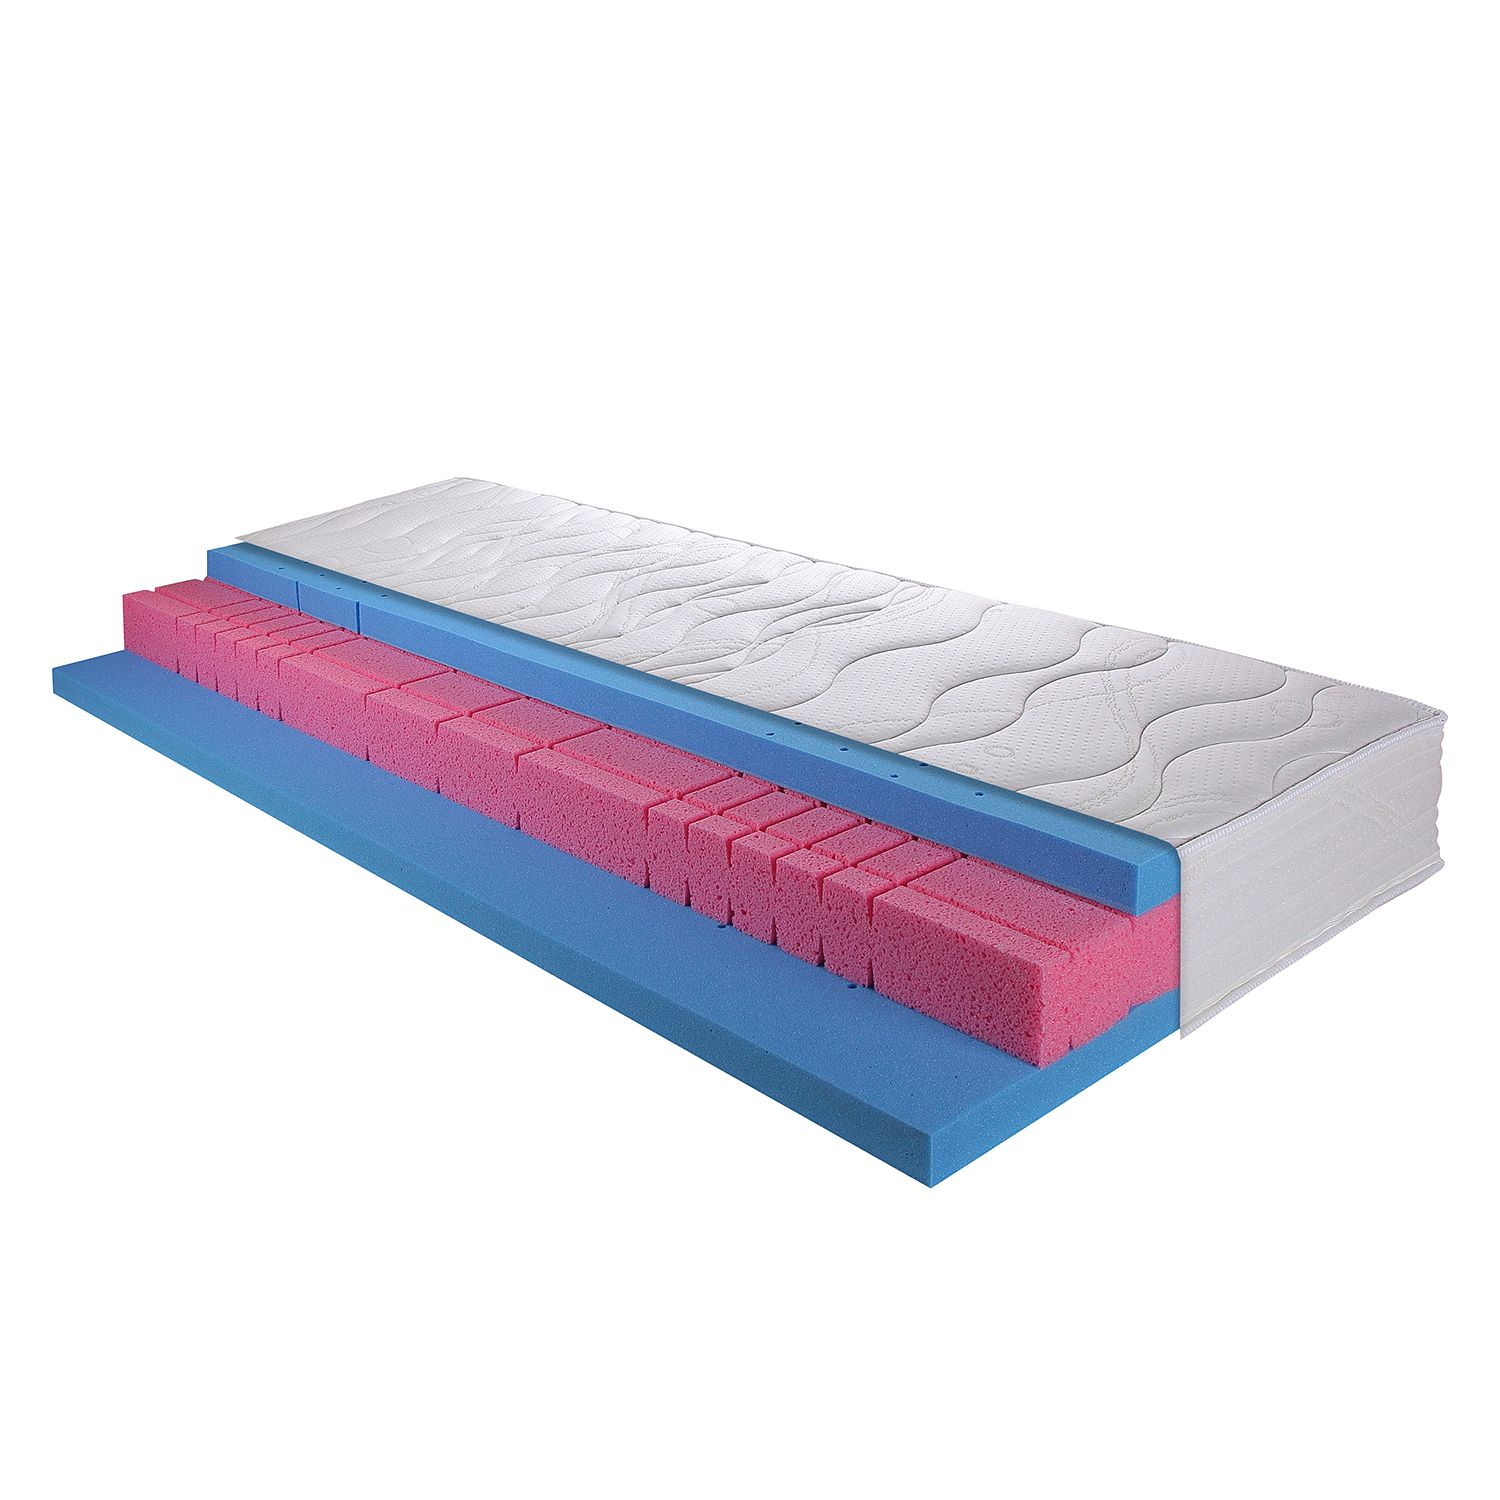 Matelas en mousse froide Ortho Air Gi - 140 x 200cm, Breckle